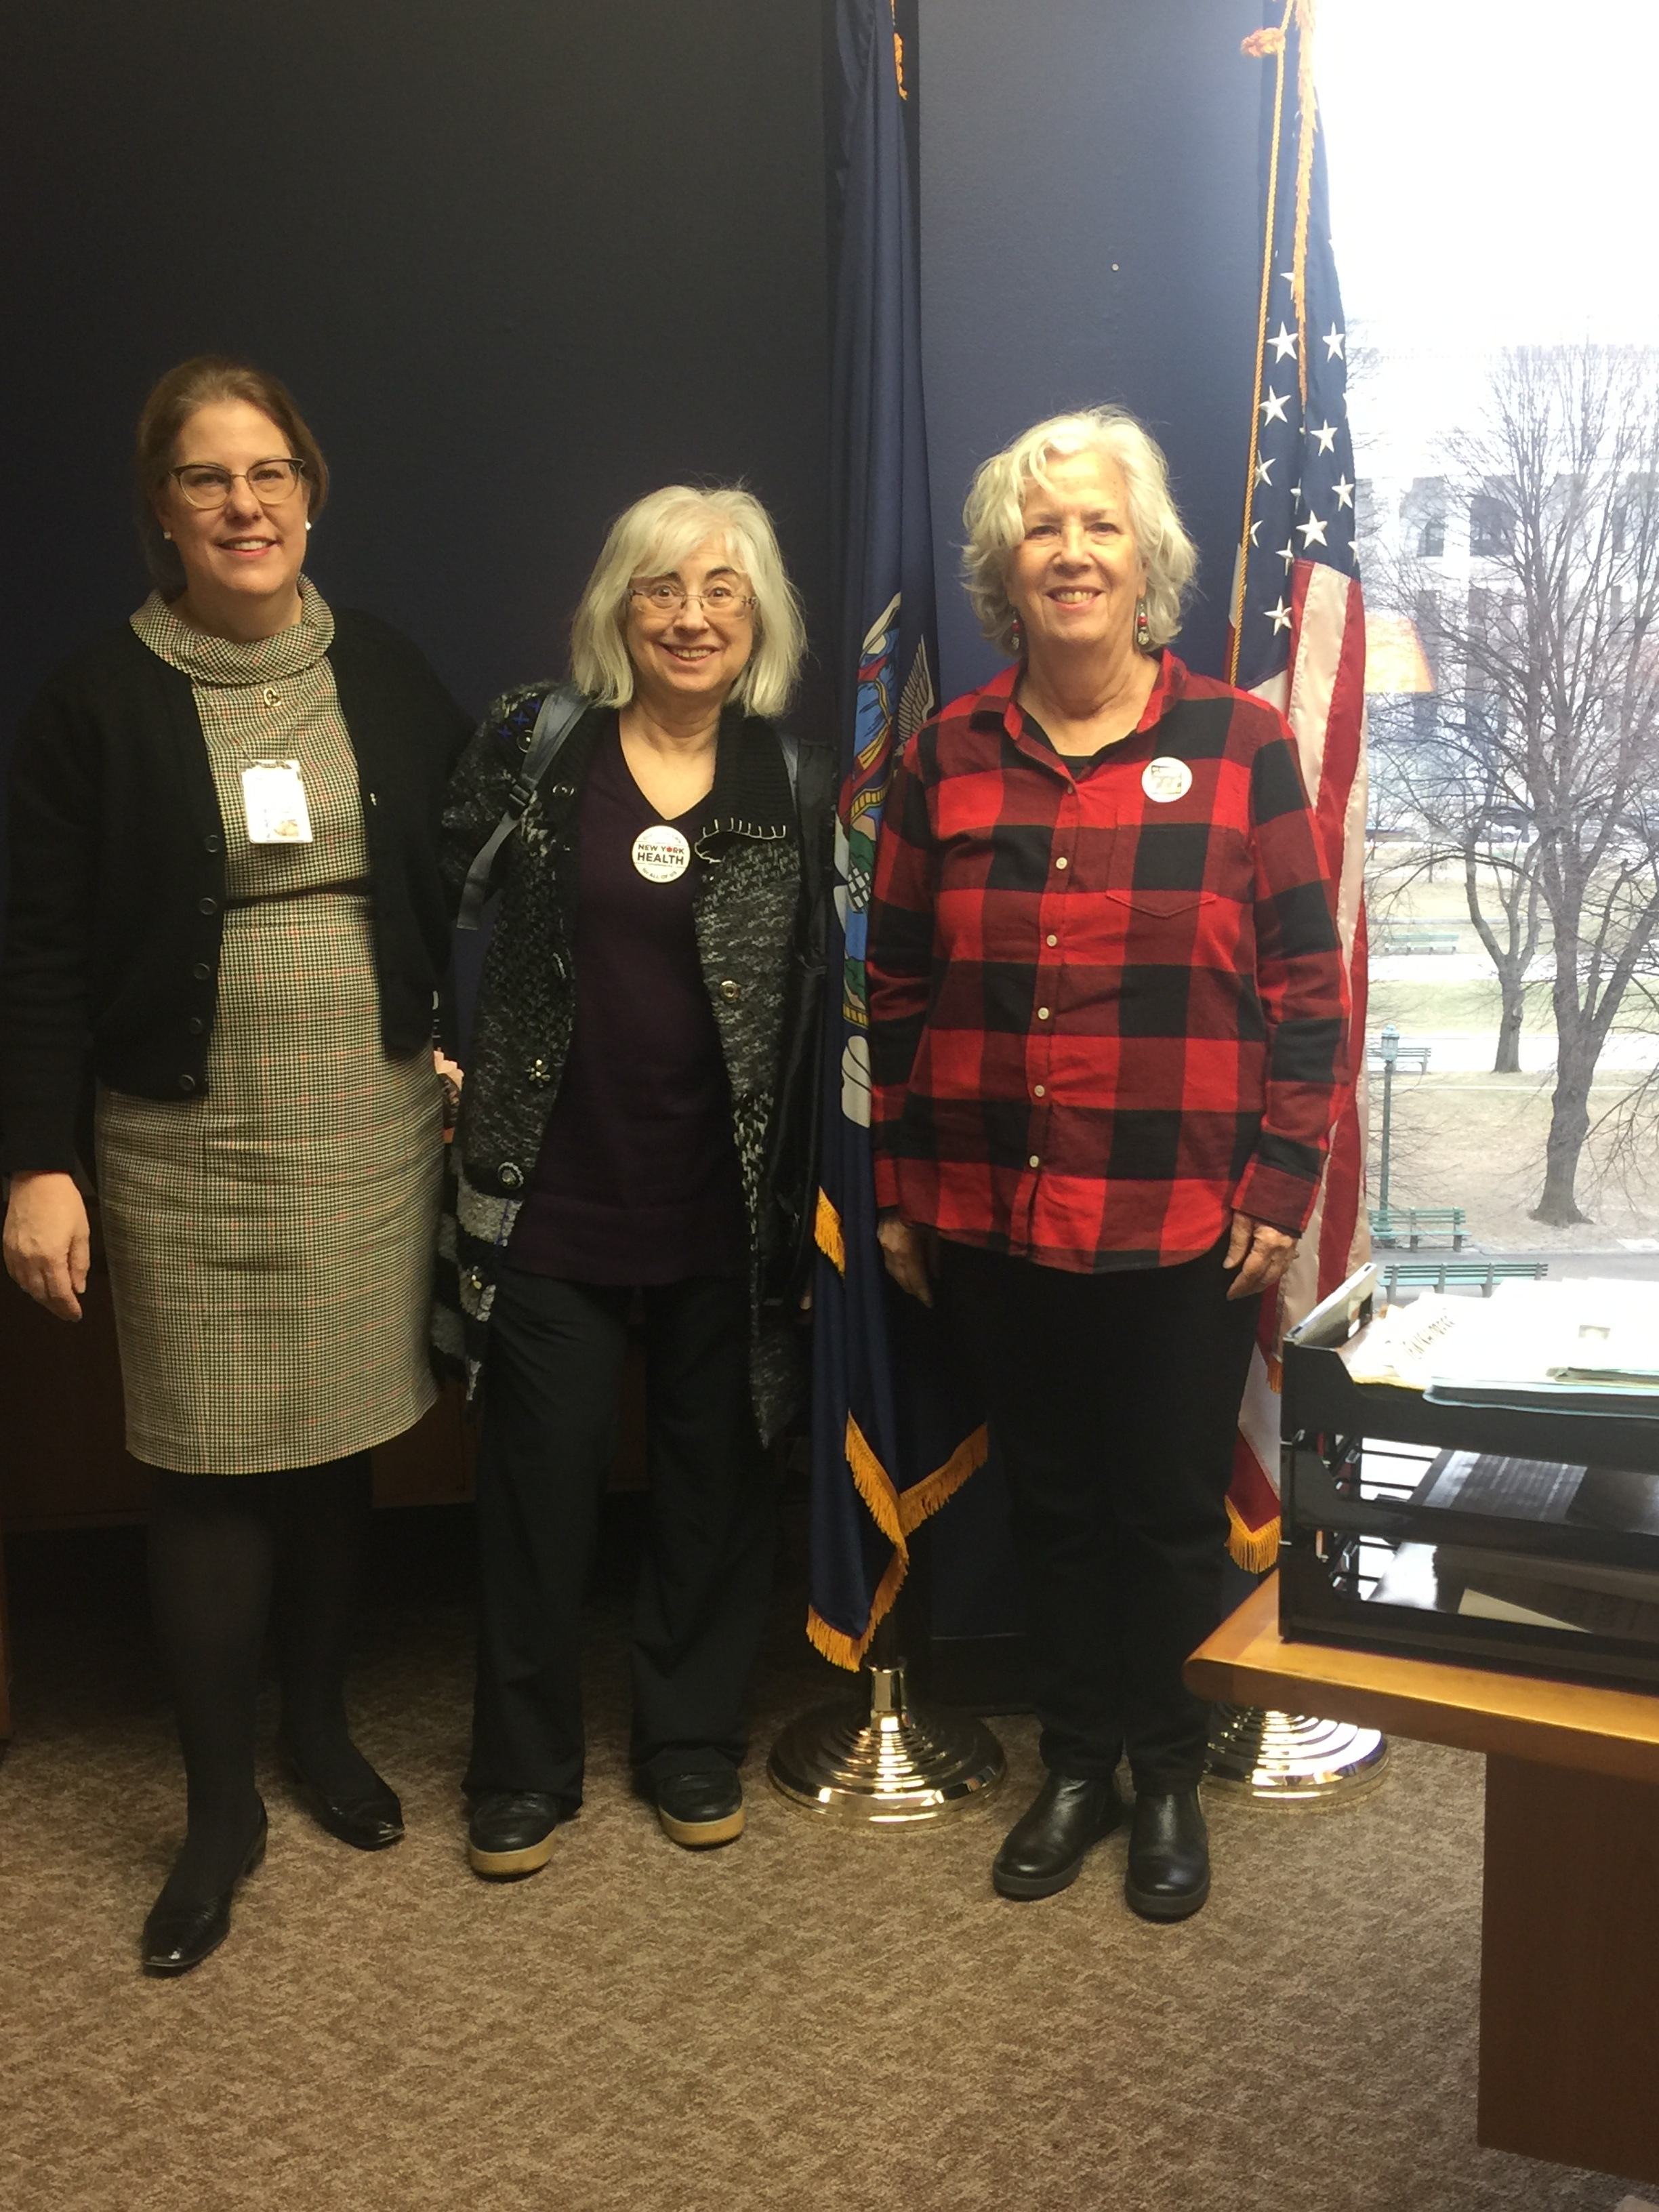 Seawright Counsel Rebecca Graham, Ellen Polivy, Vicki Feinmel, and Joan Brooks (not pictured) visit the legislative office to discuss their support for the single-payer system in New York State.